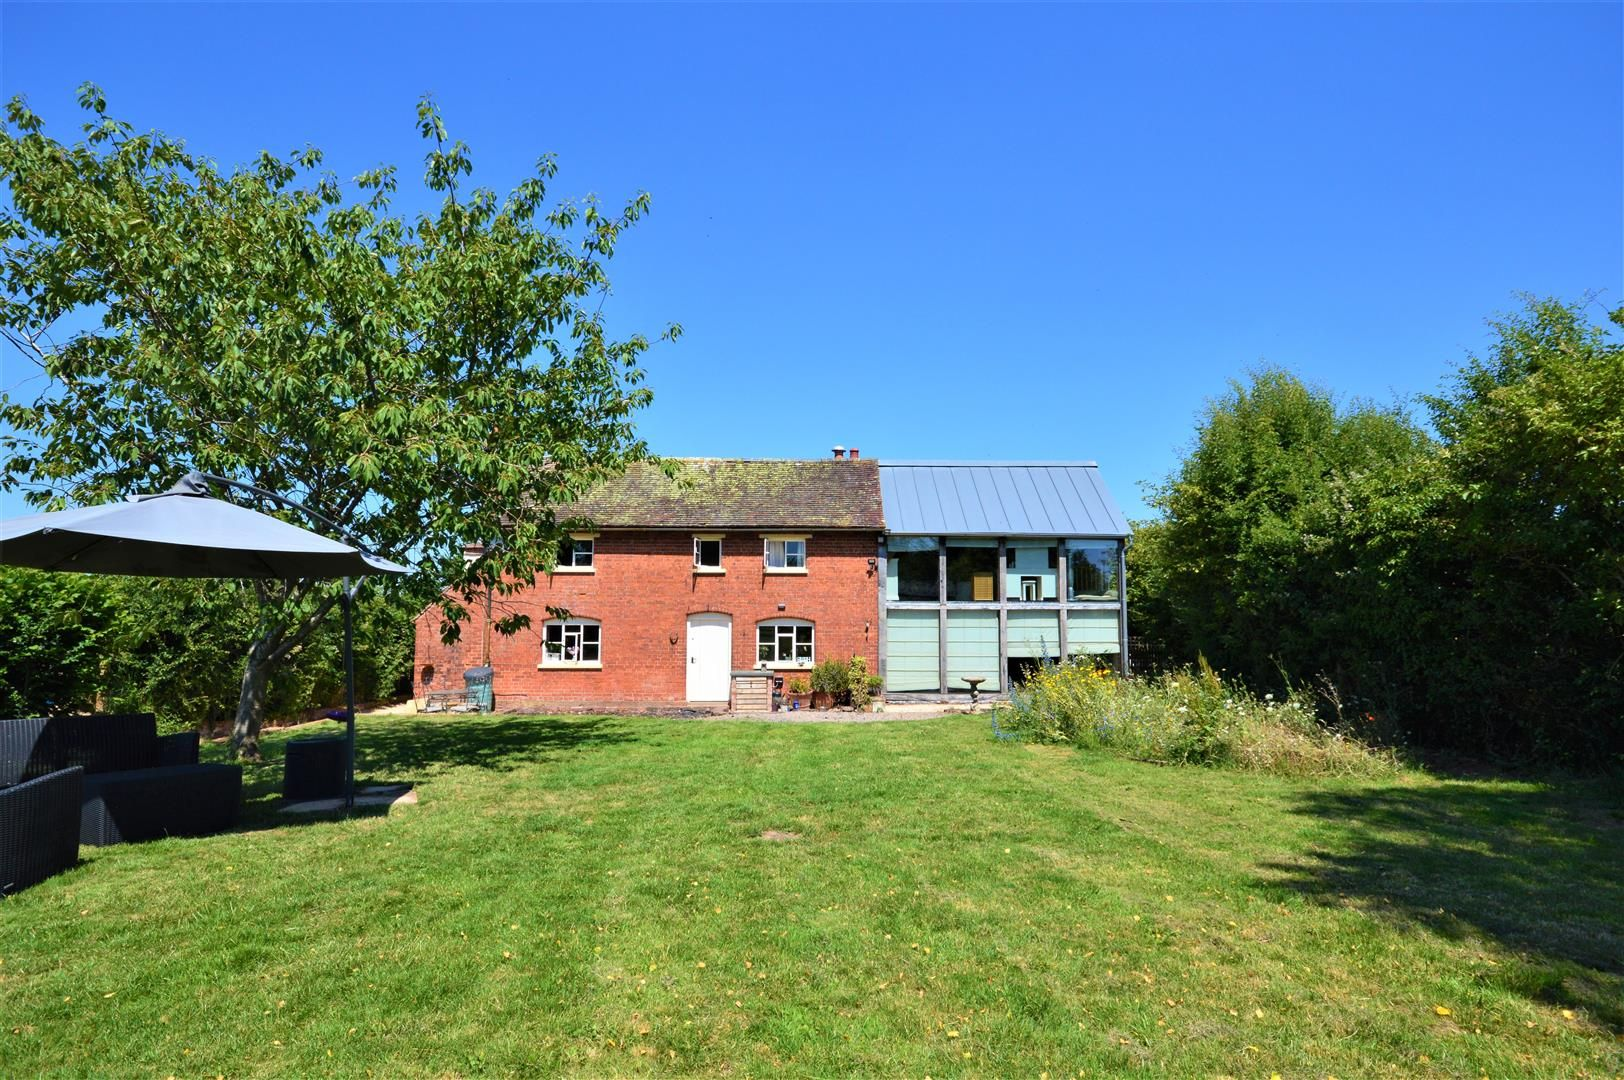 3 bed detached for sale in Canon Frome - Property Image 1